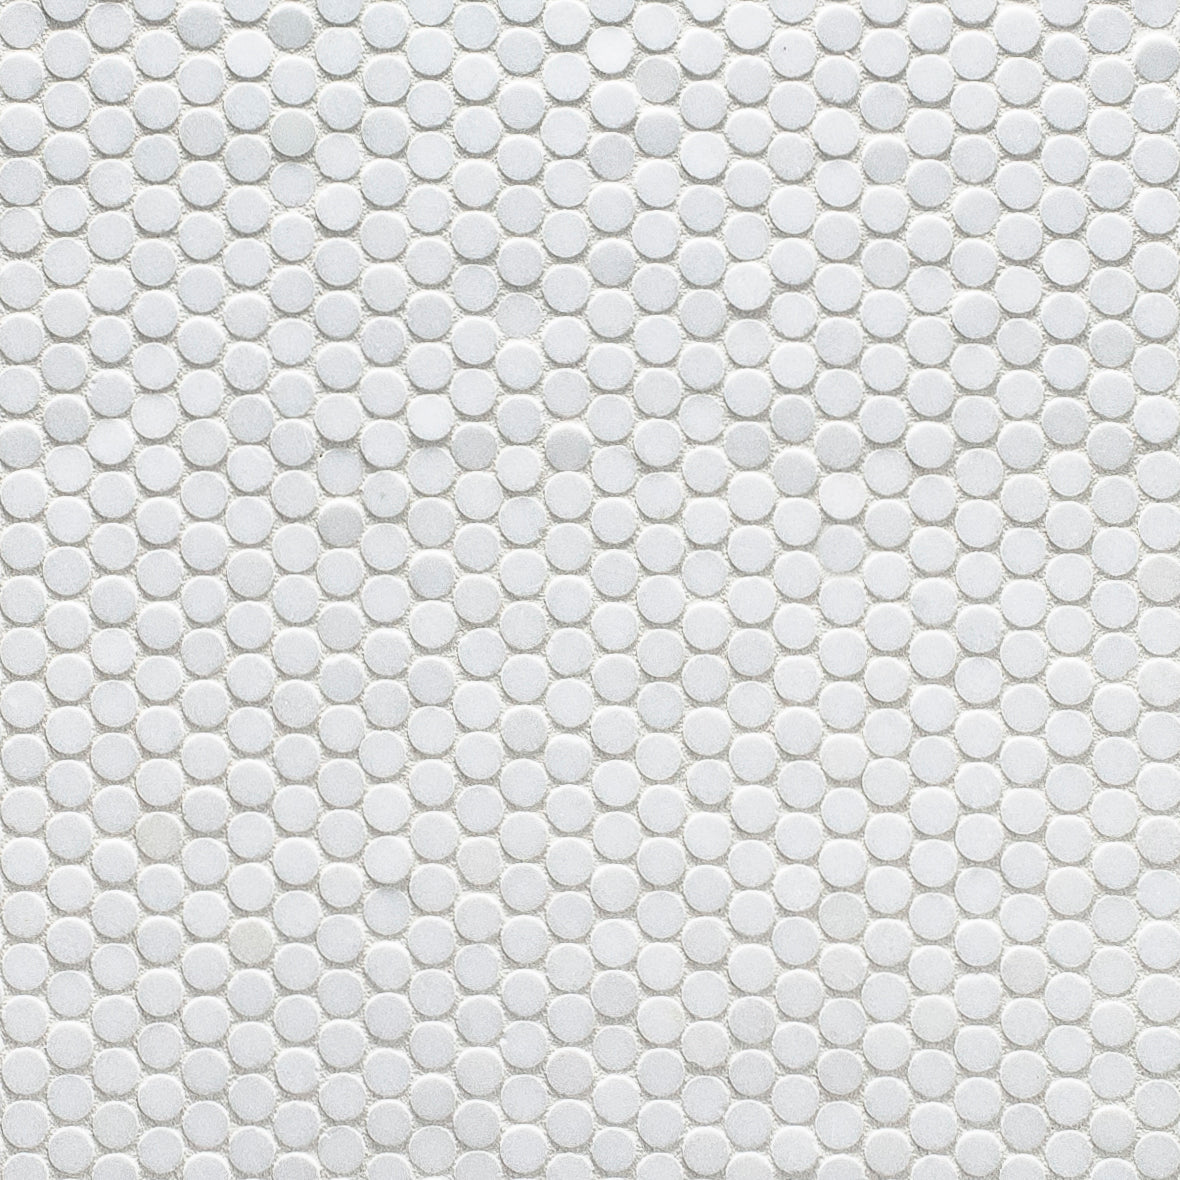 Studs Thassos Marble Mosaic product photo